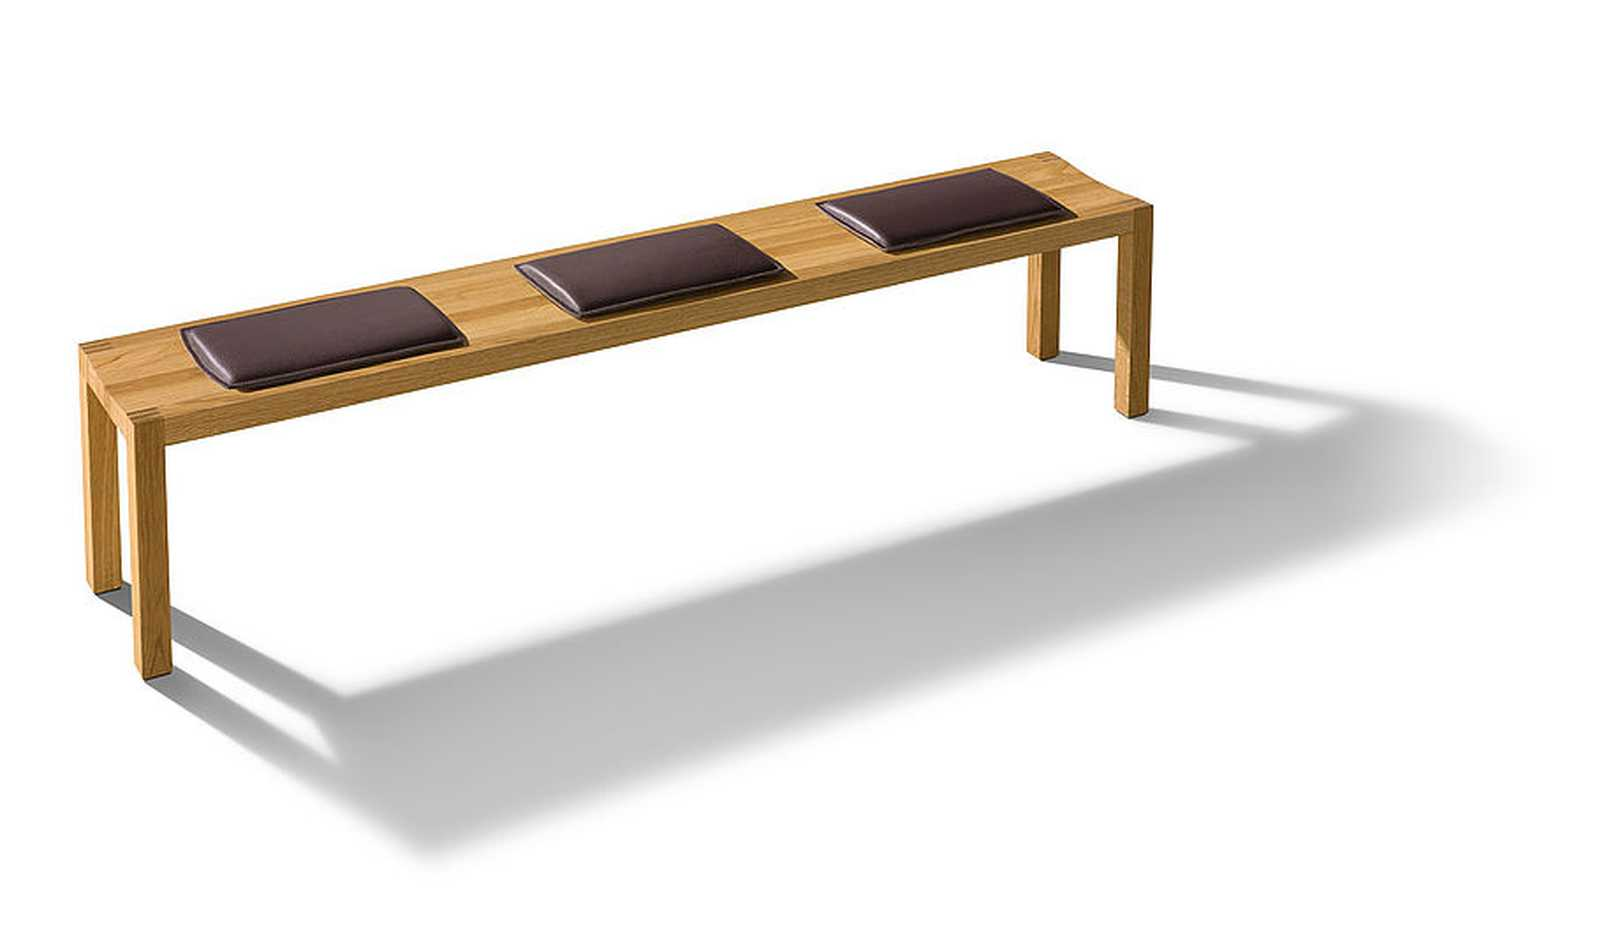 Loft Bench by Team 7 product image 2